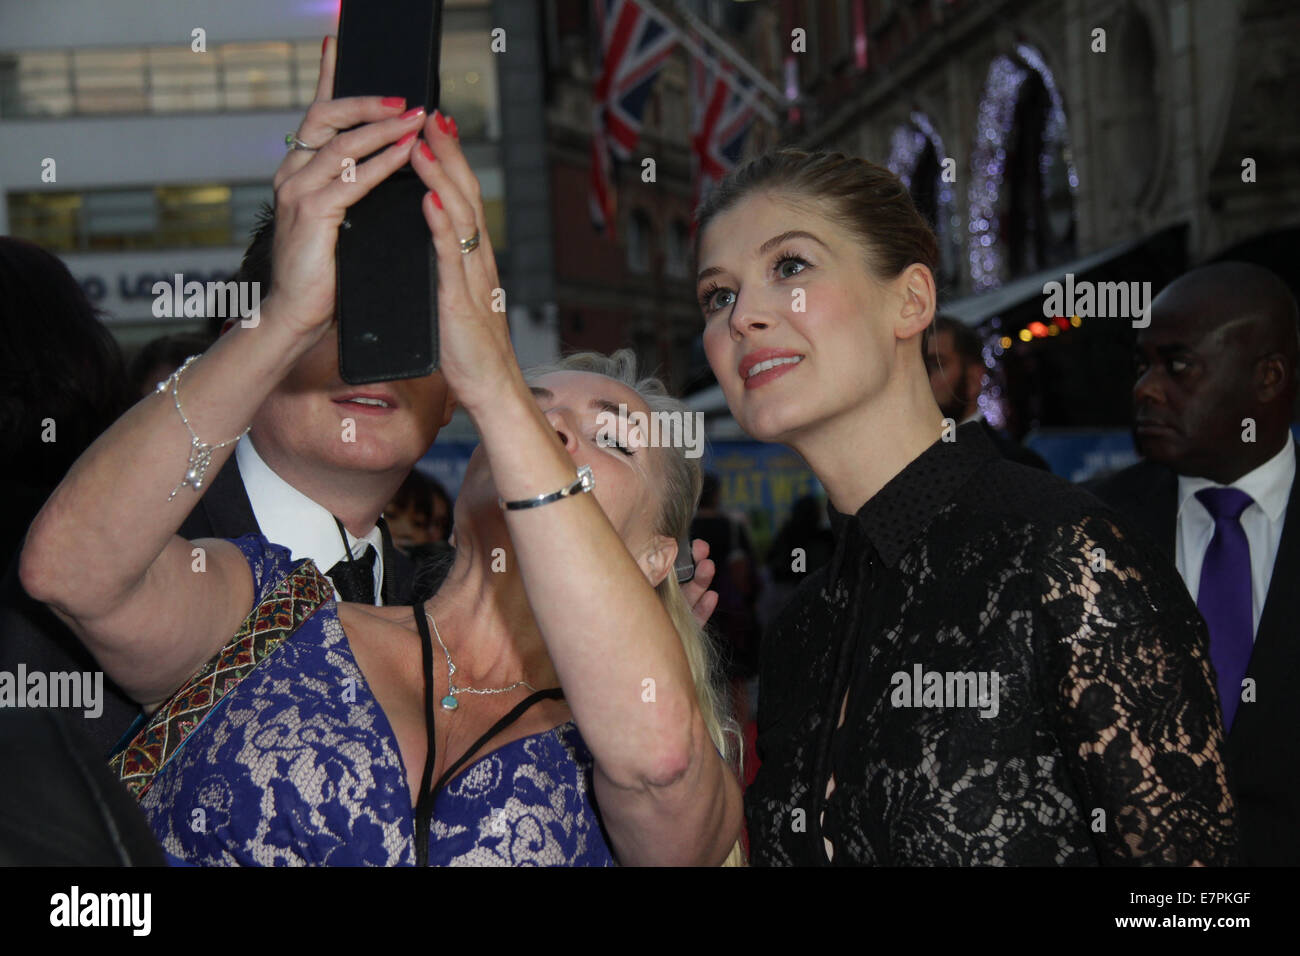 London, UK, 22nd September 2014: Rosamund Pike attends the What we did on our holiday film premiere at the Odeon - Stock Image